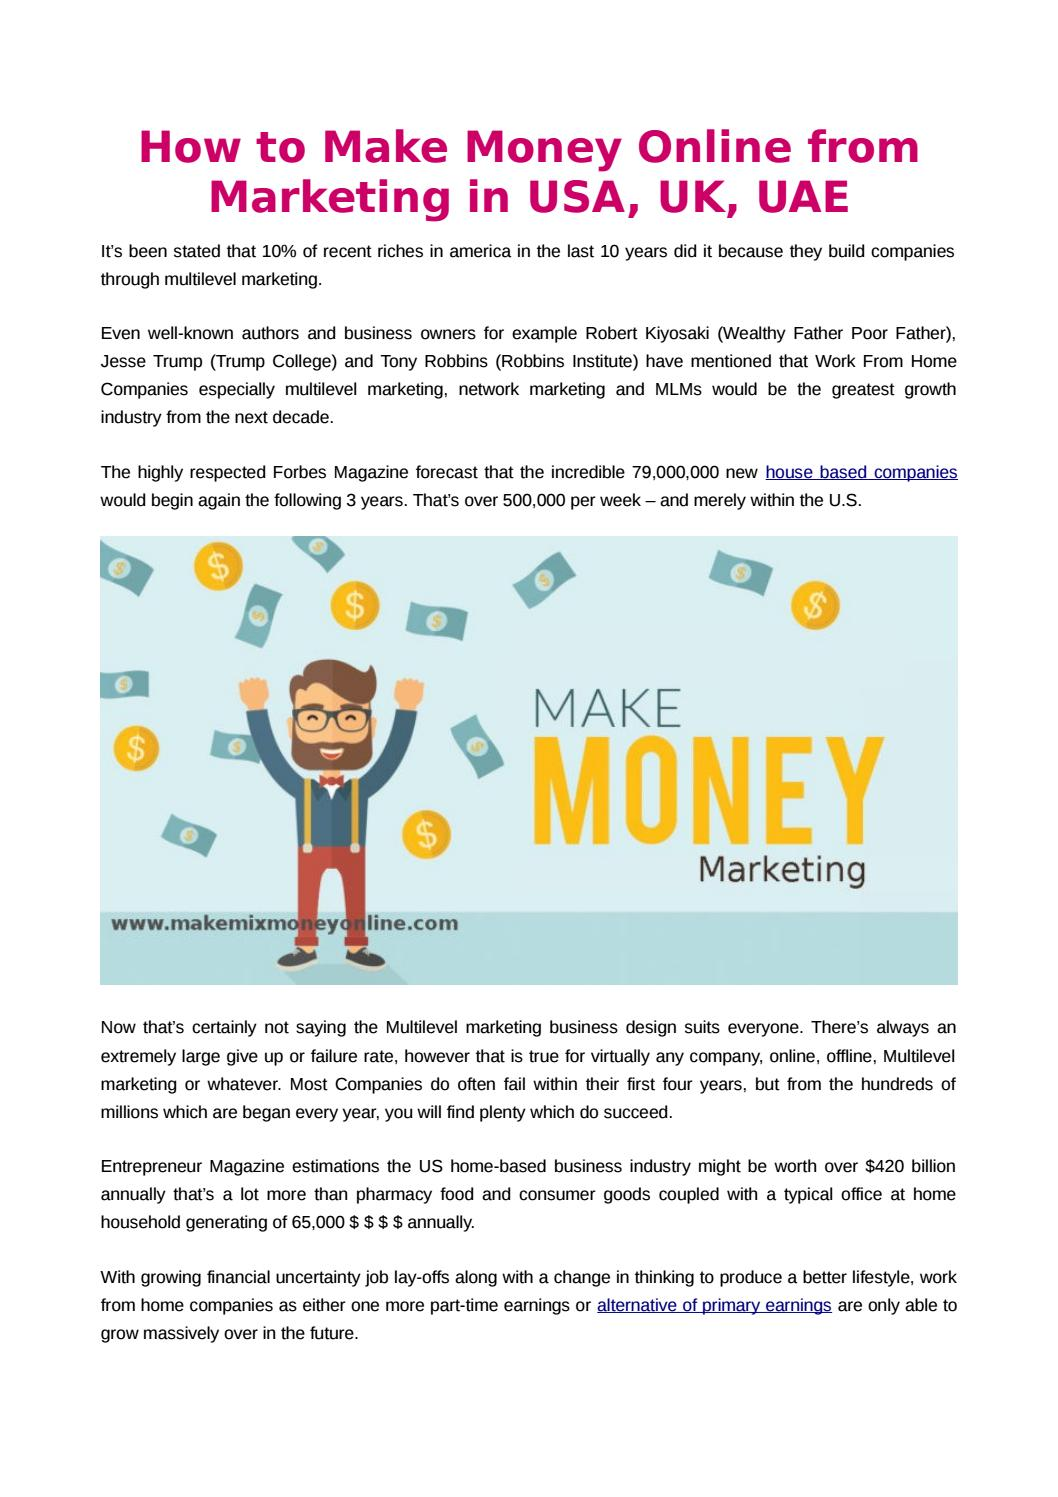 How to make money online from marketing in usa, uk, uae by